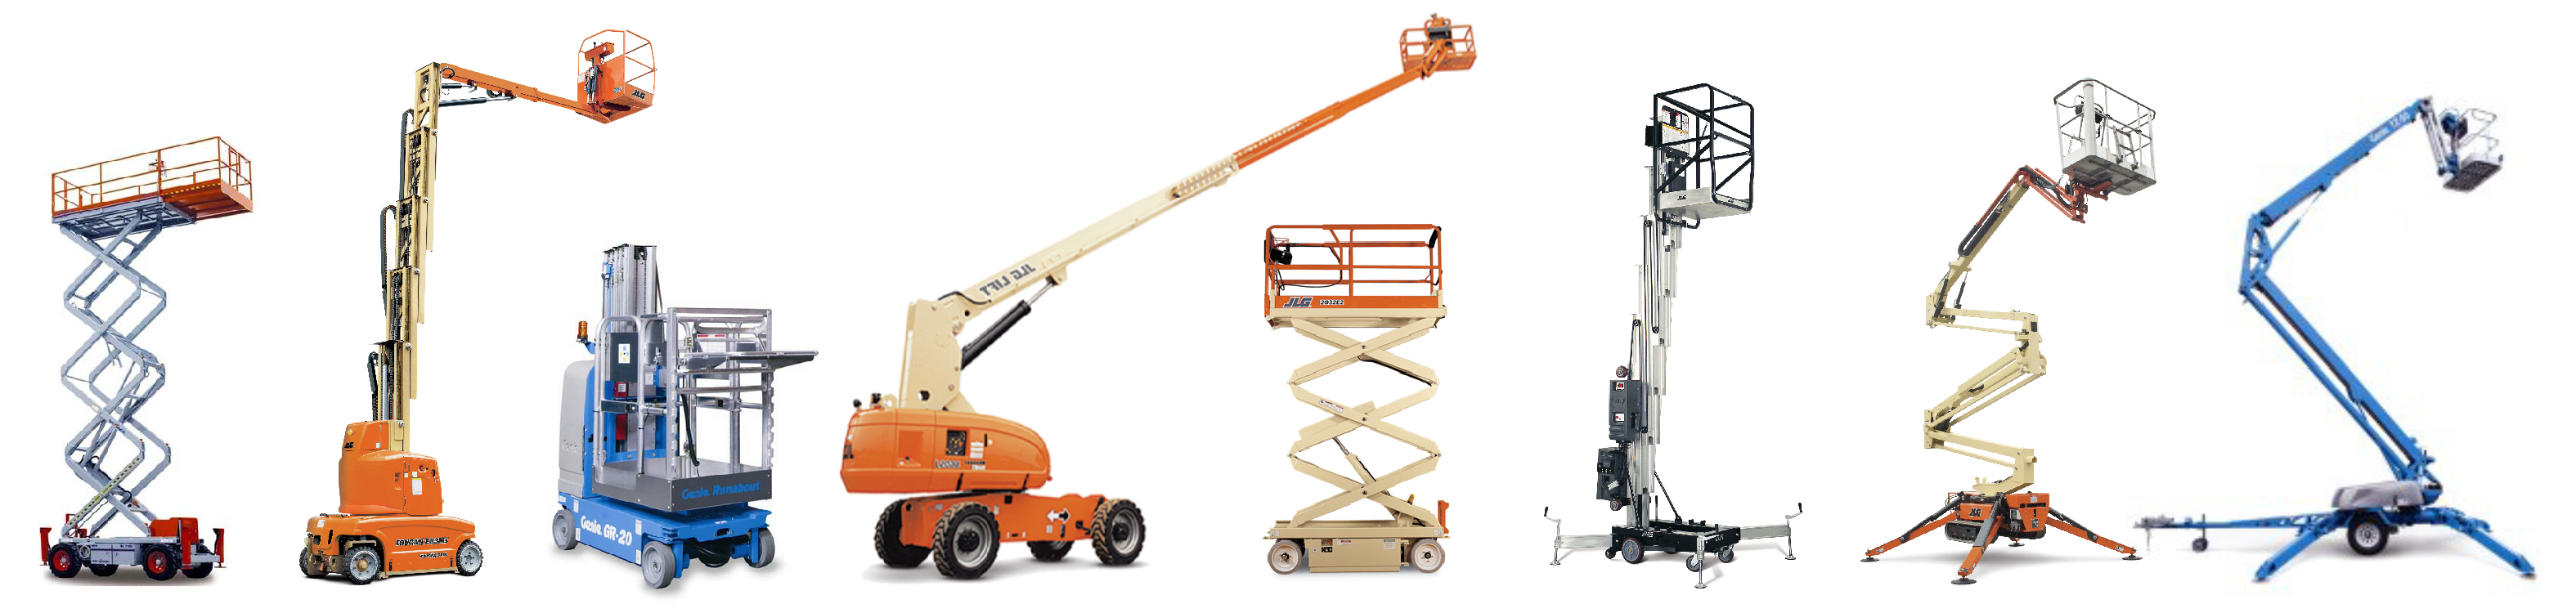 Elevated Work Platforms: Which One Is Right For The Job?